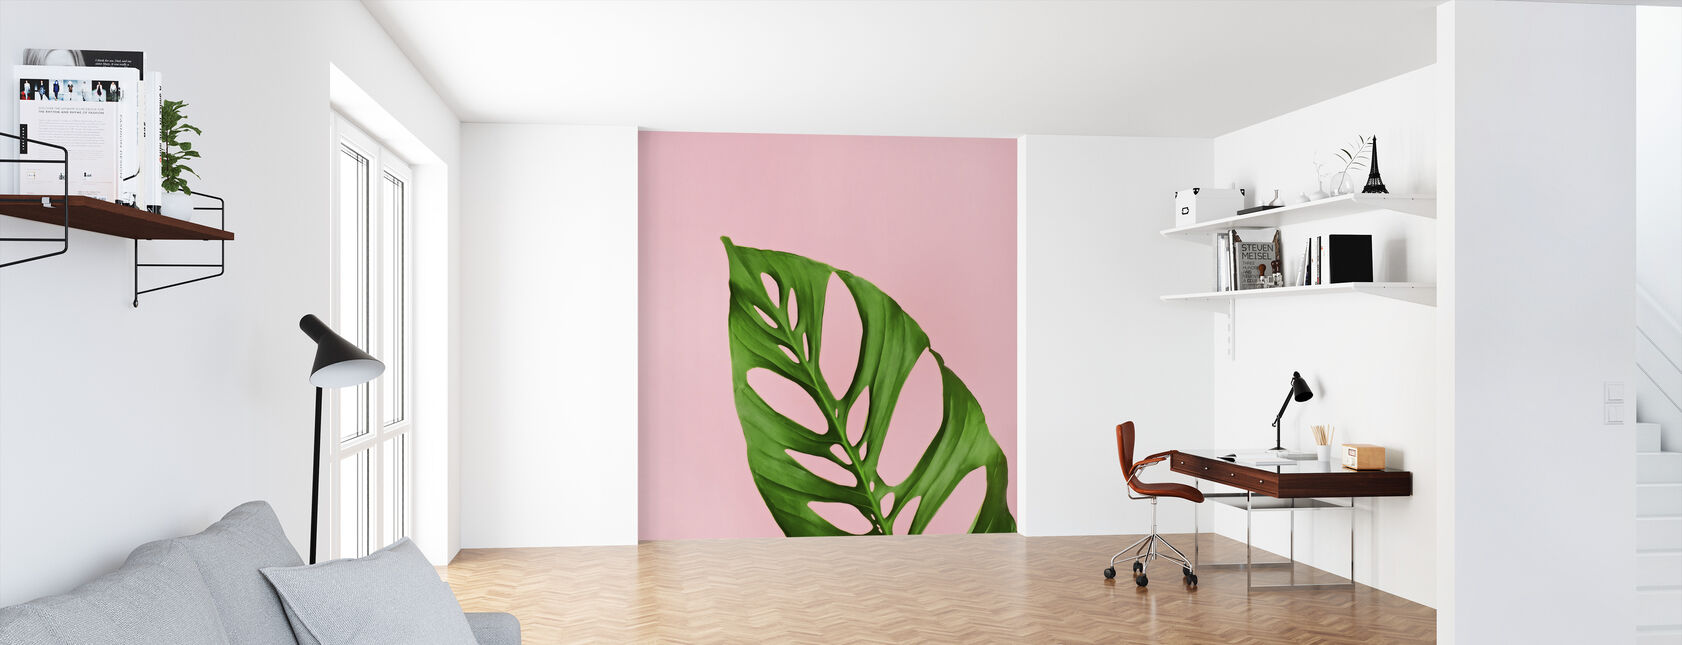 Philodendron Leaf - Wallpaper - Office